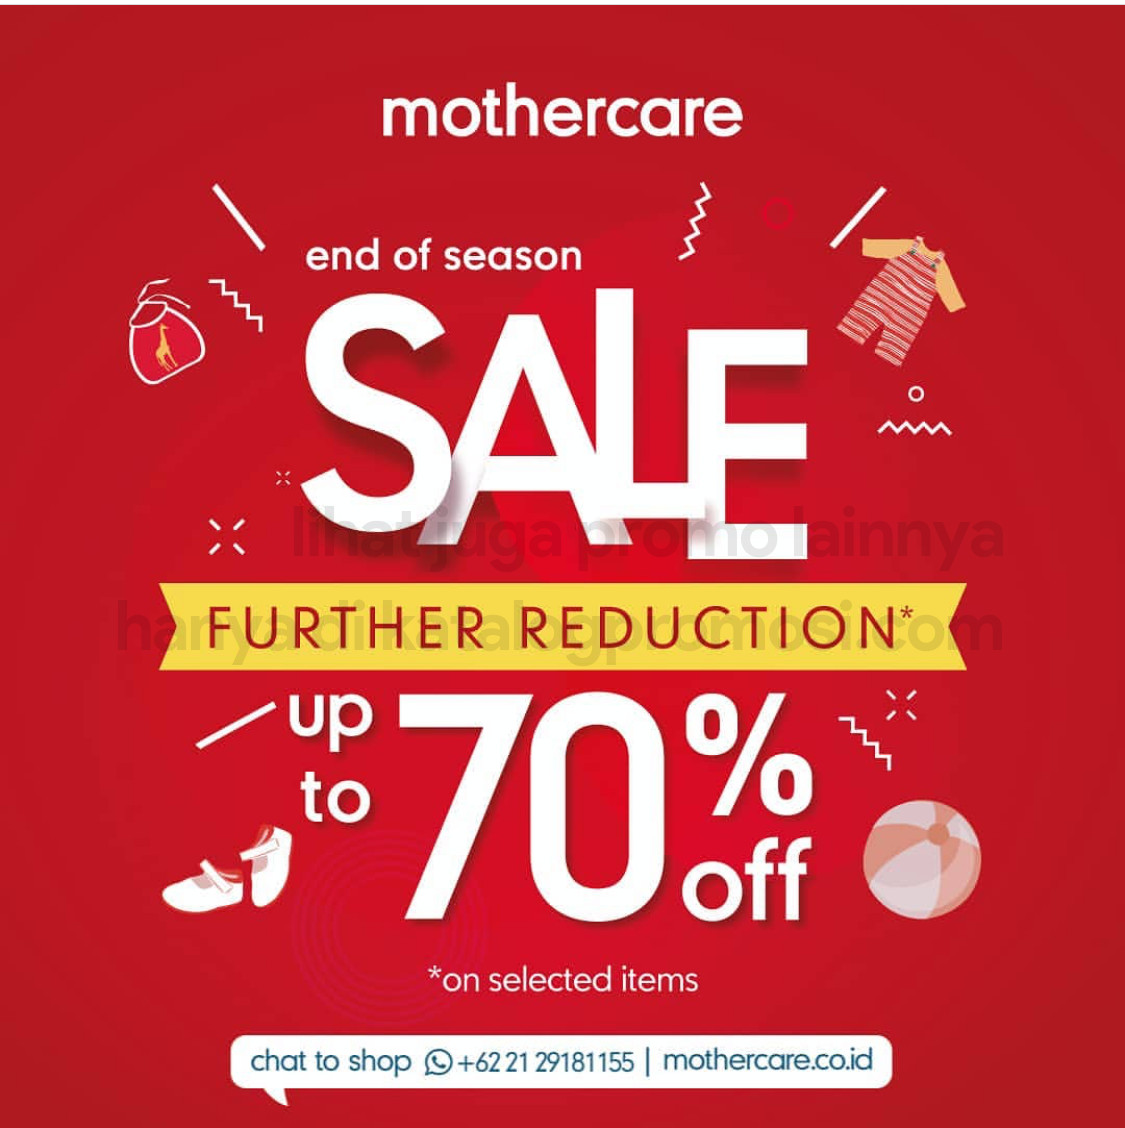 MOTHERCARE Promo END OF SEASON SALE FURTHER REDUCTION Up To 70% Off*